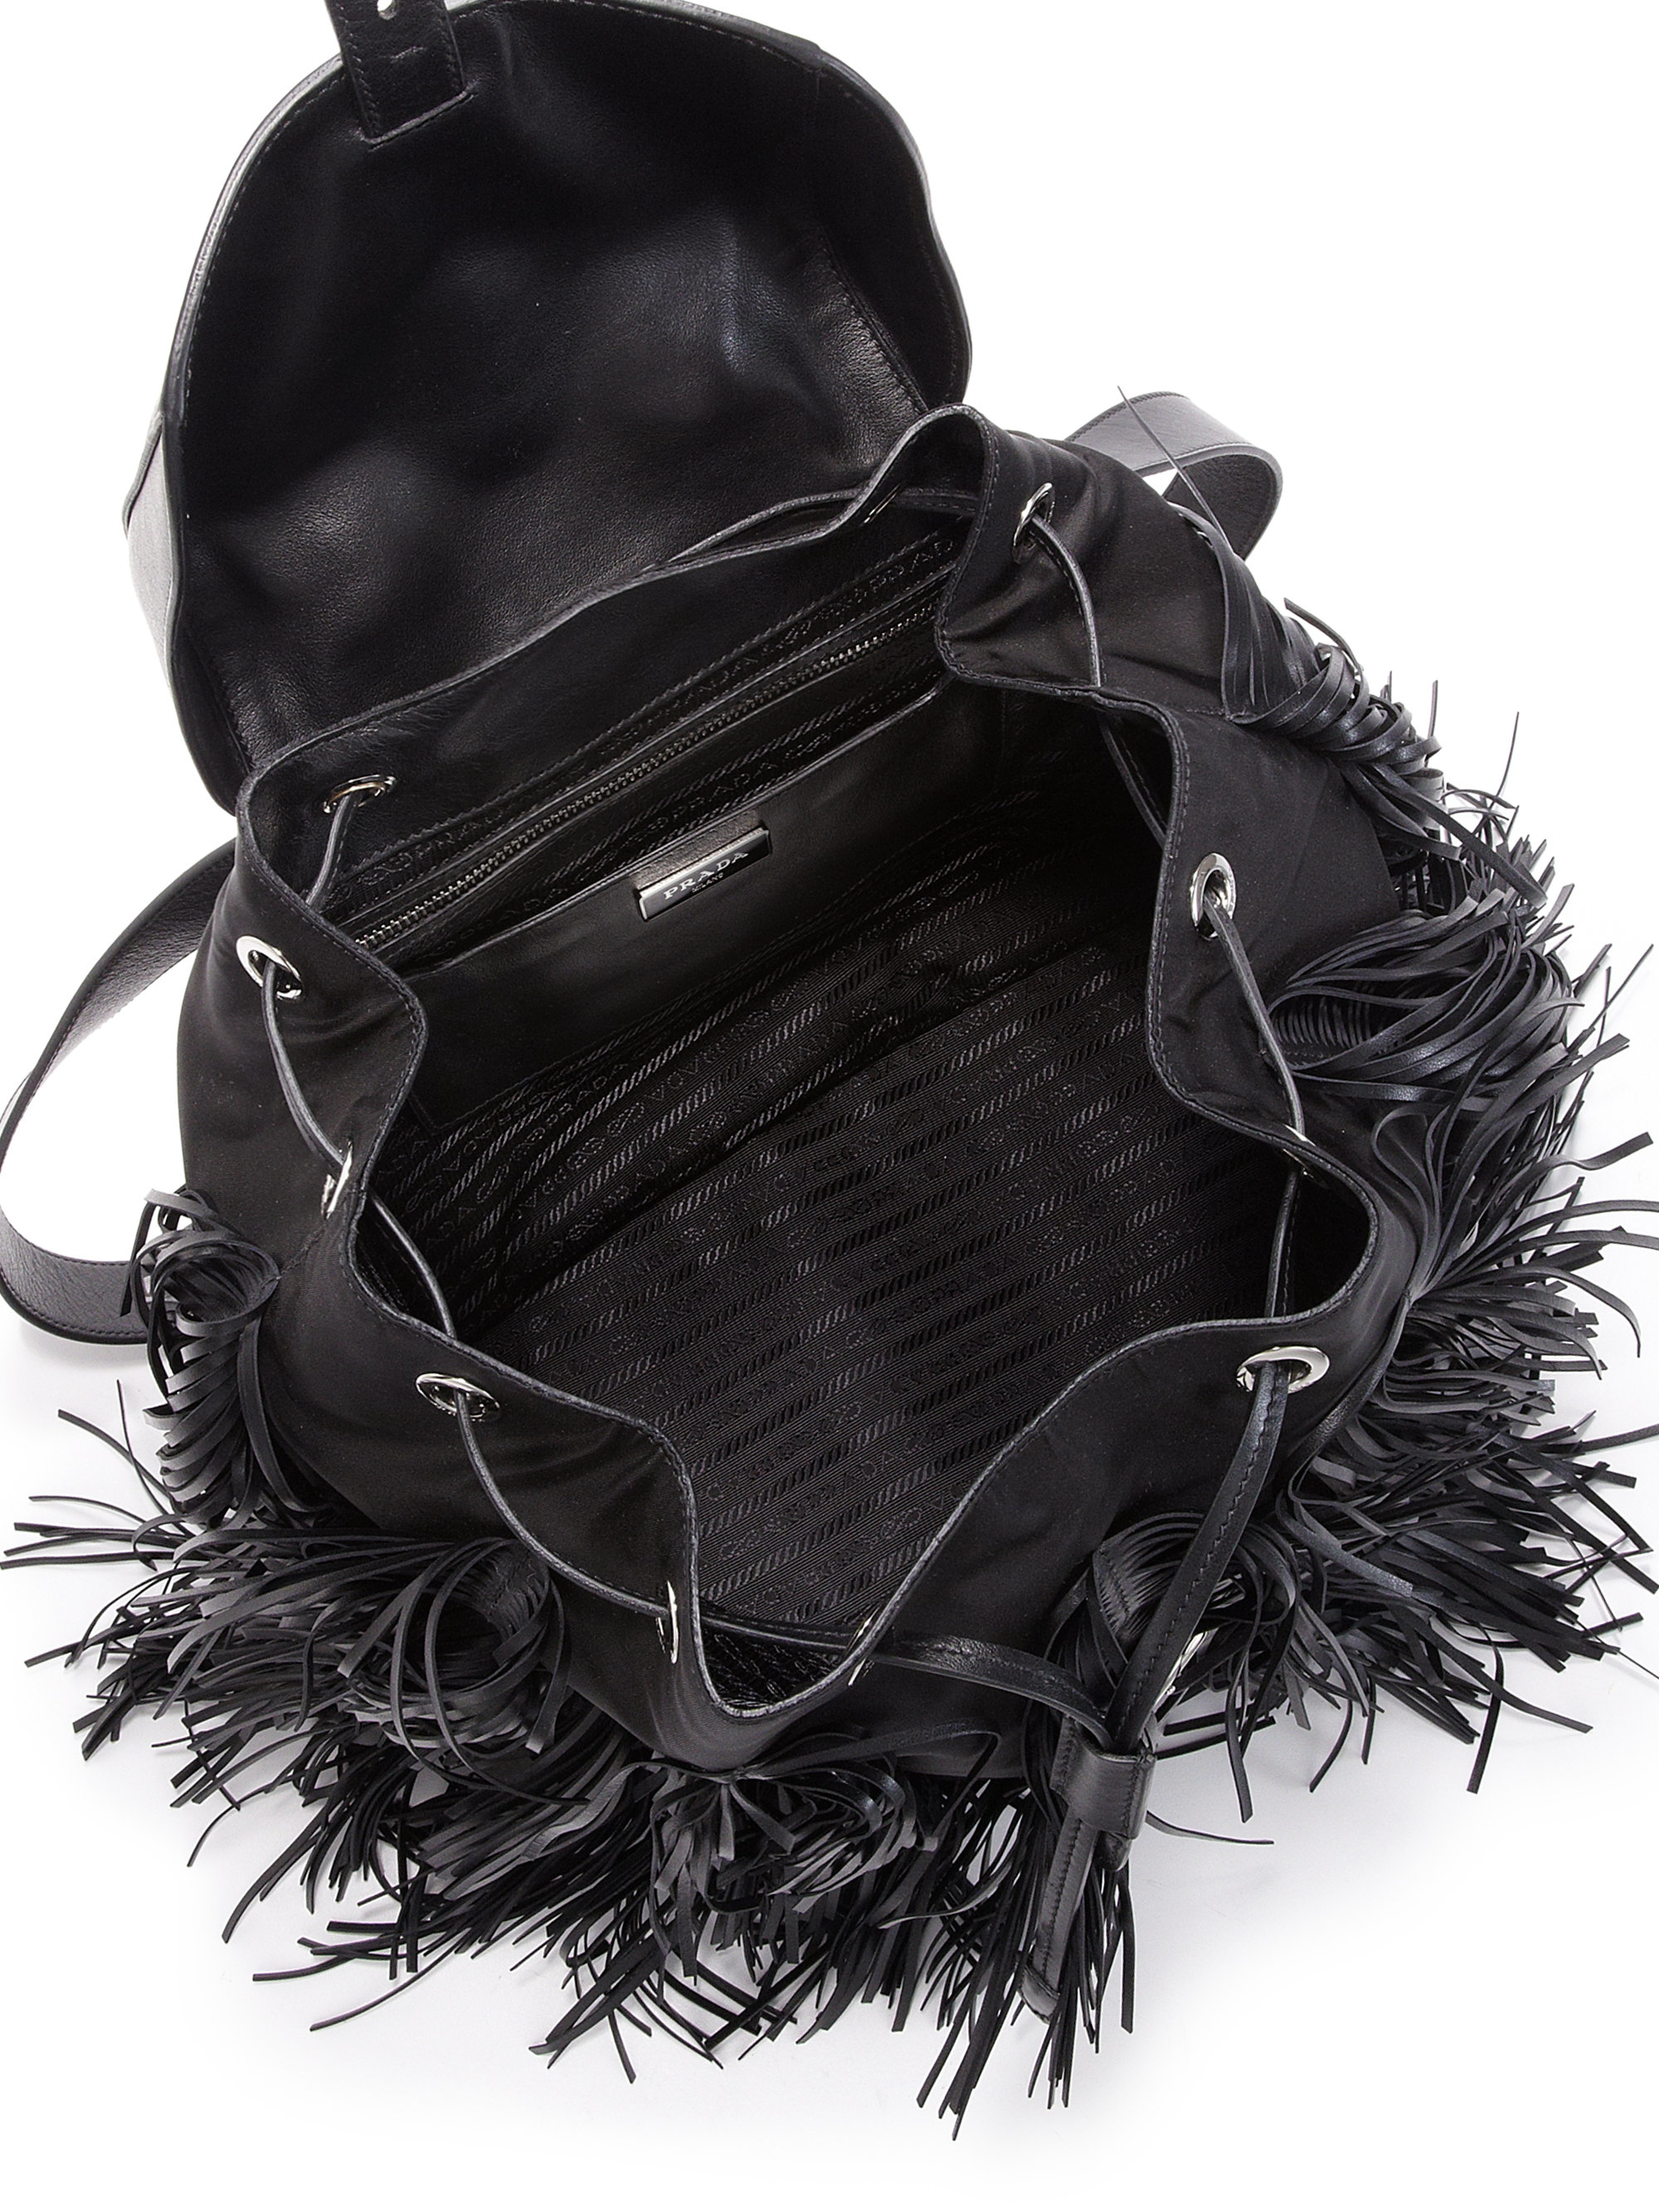 Prada Fringed Nylon \u0026amp; Leather Backpack in Black | Lyst